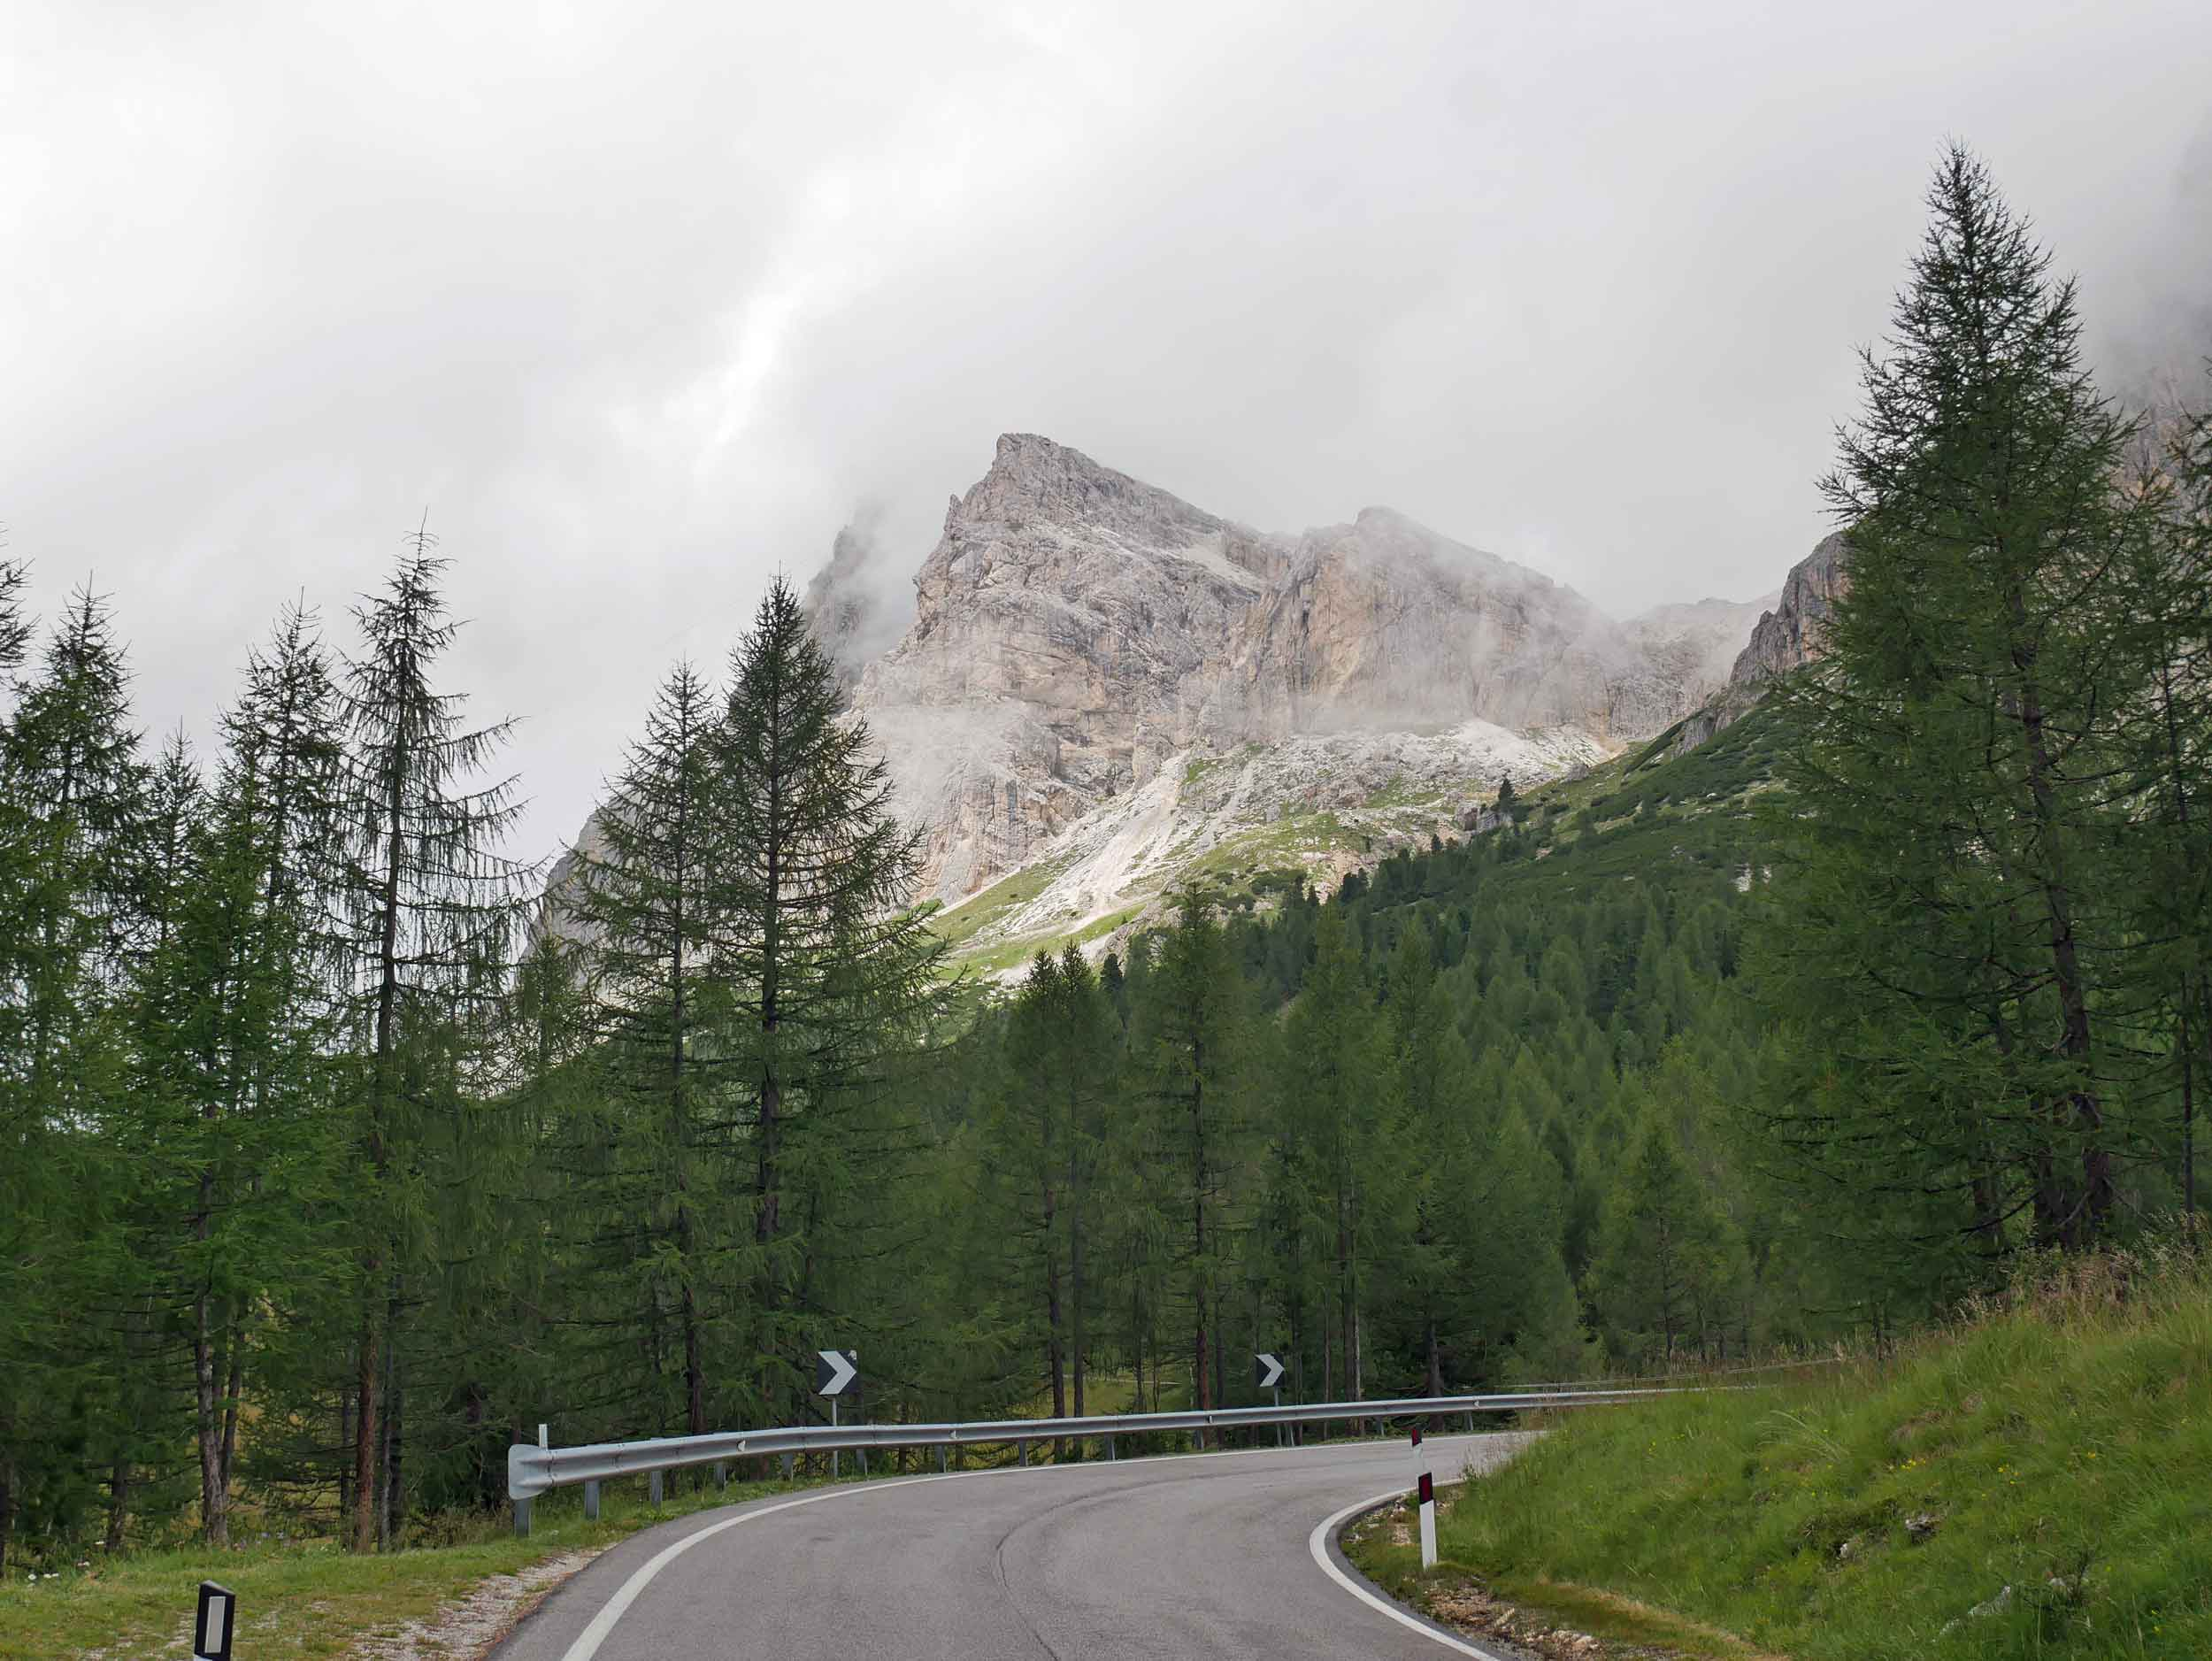 A classic Italian drive, the smooth roads and steep curves made for a fun road trip.